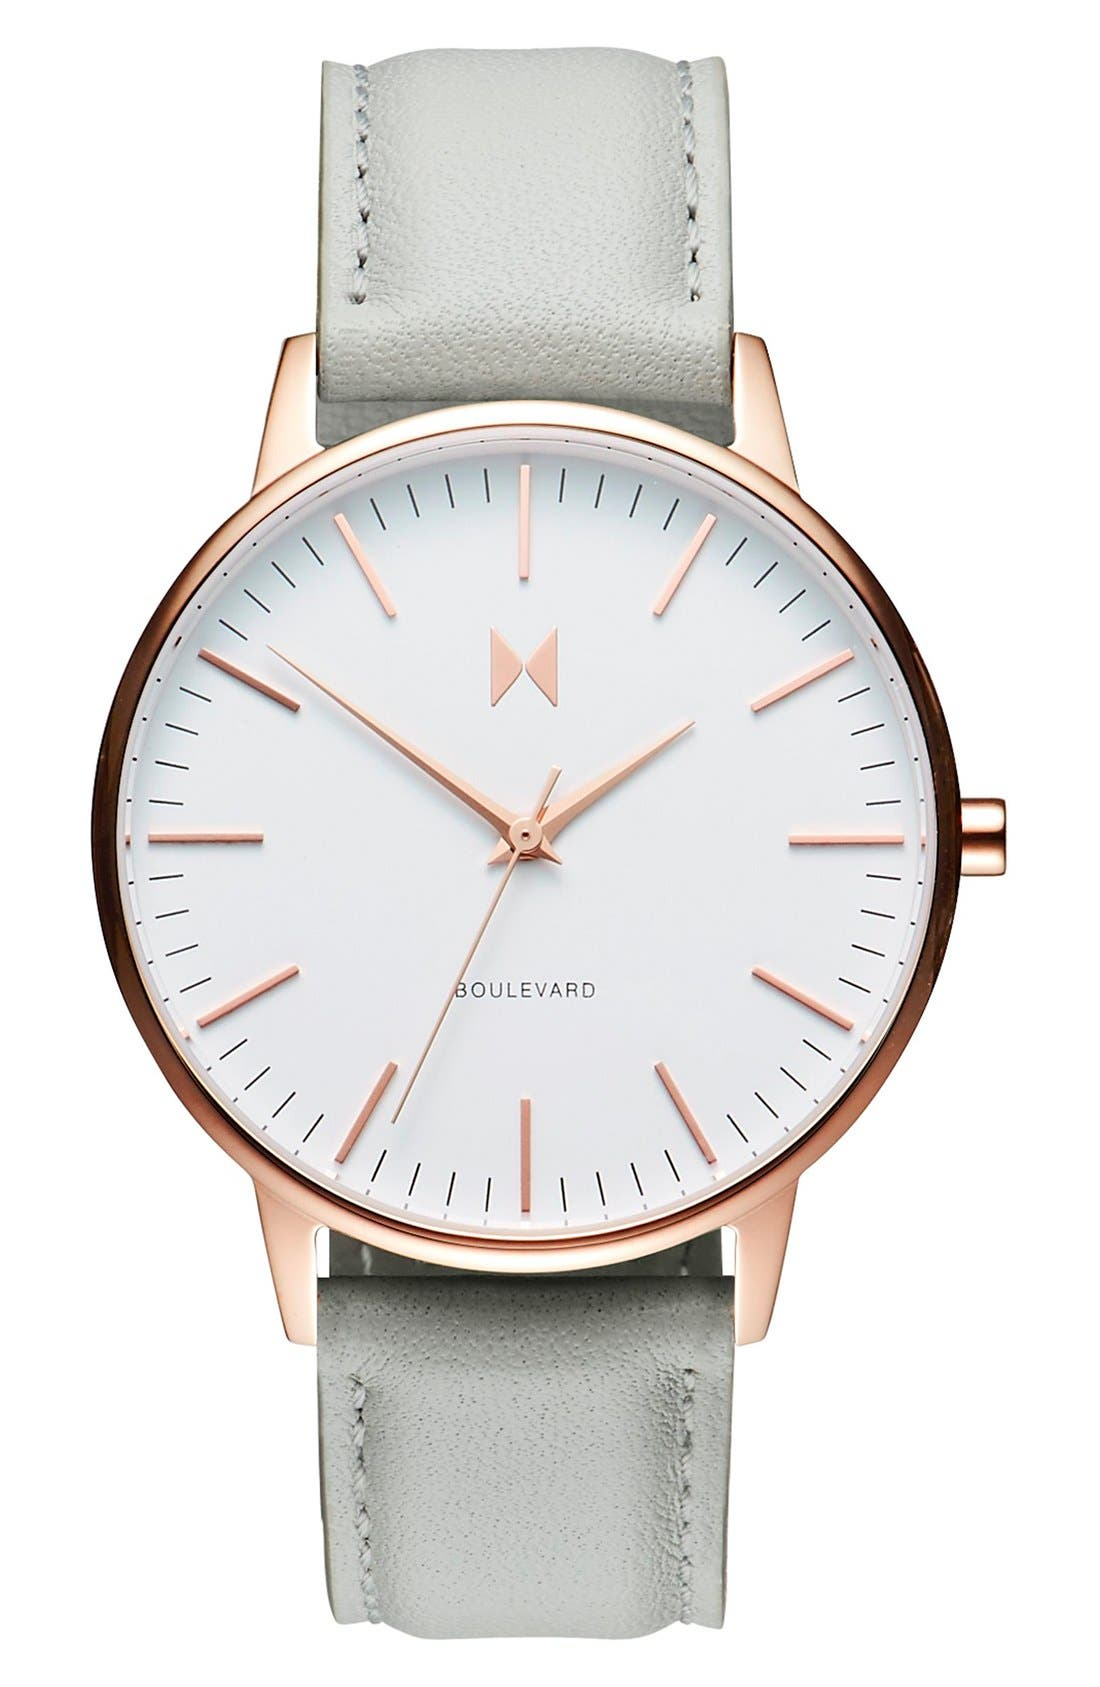 Boulevard Leather Strap Watch, 38mm,                             Main thumbnail 1, color,                             GREY/ WHITE/ ROSE GOLD